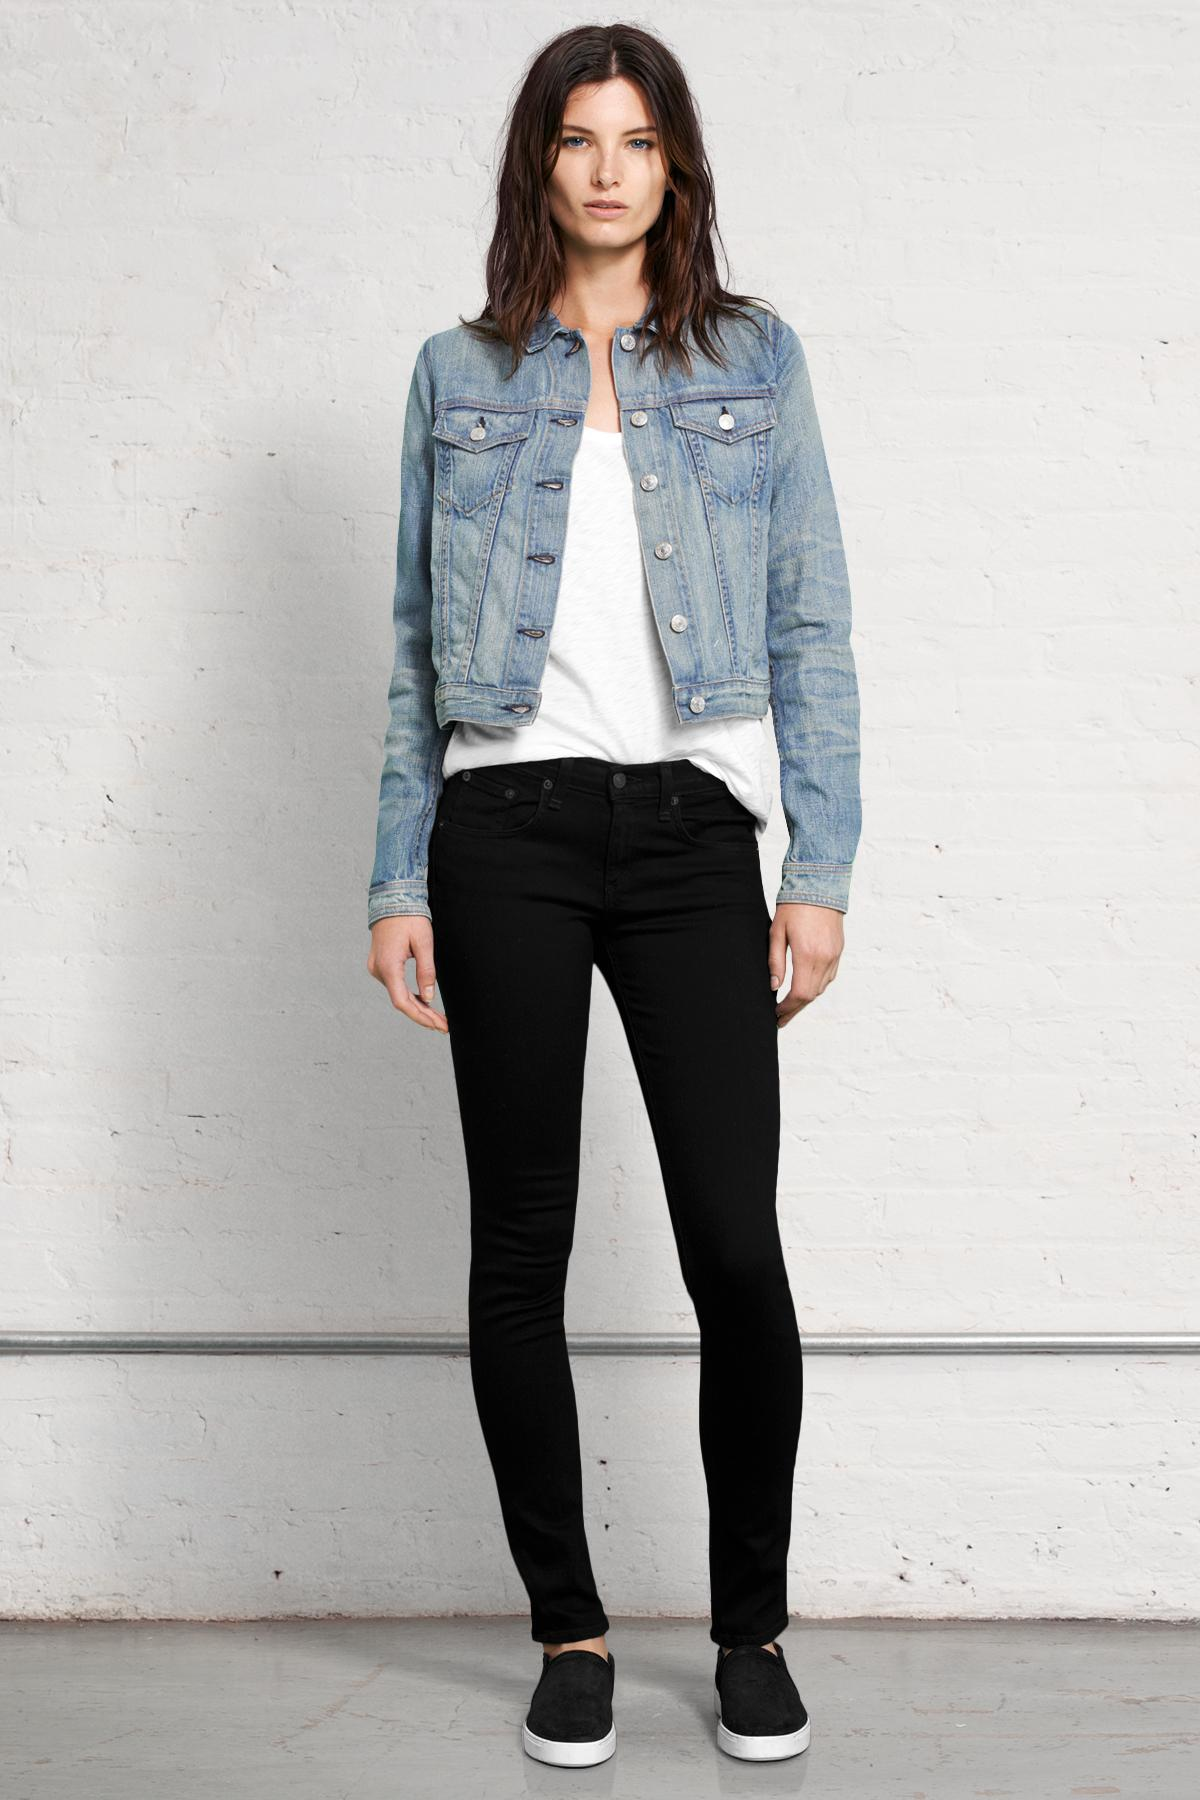 The Jean Jacket | rag & bone